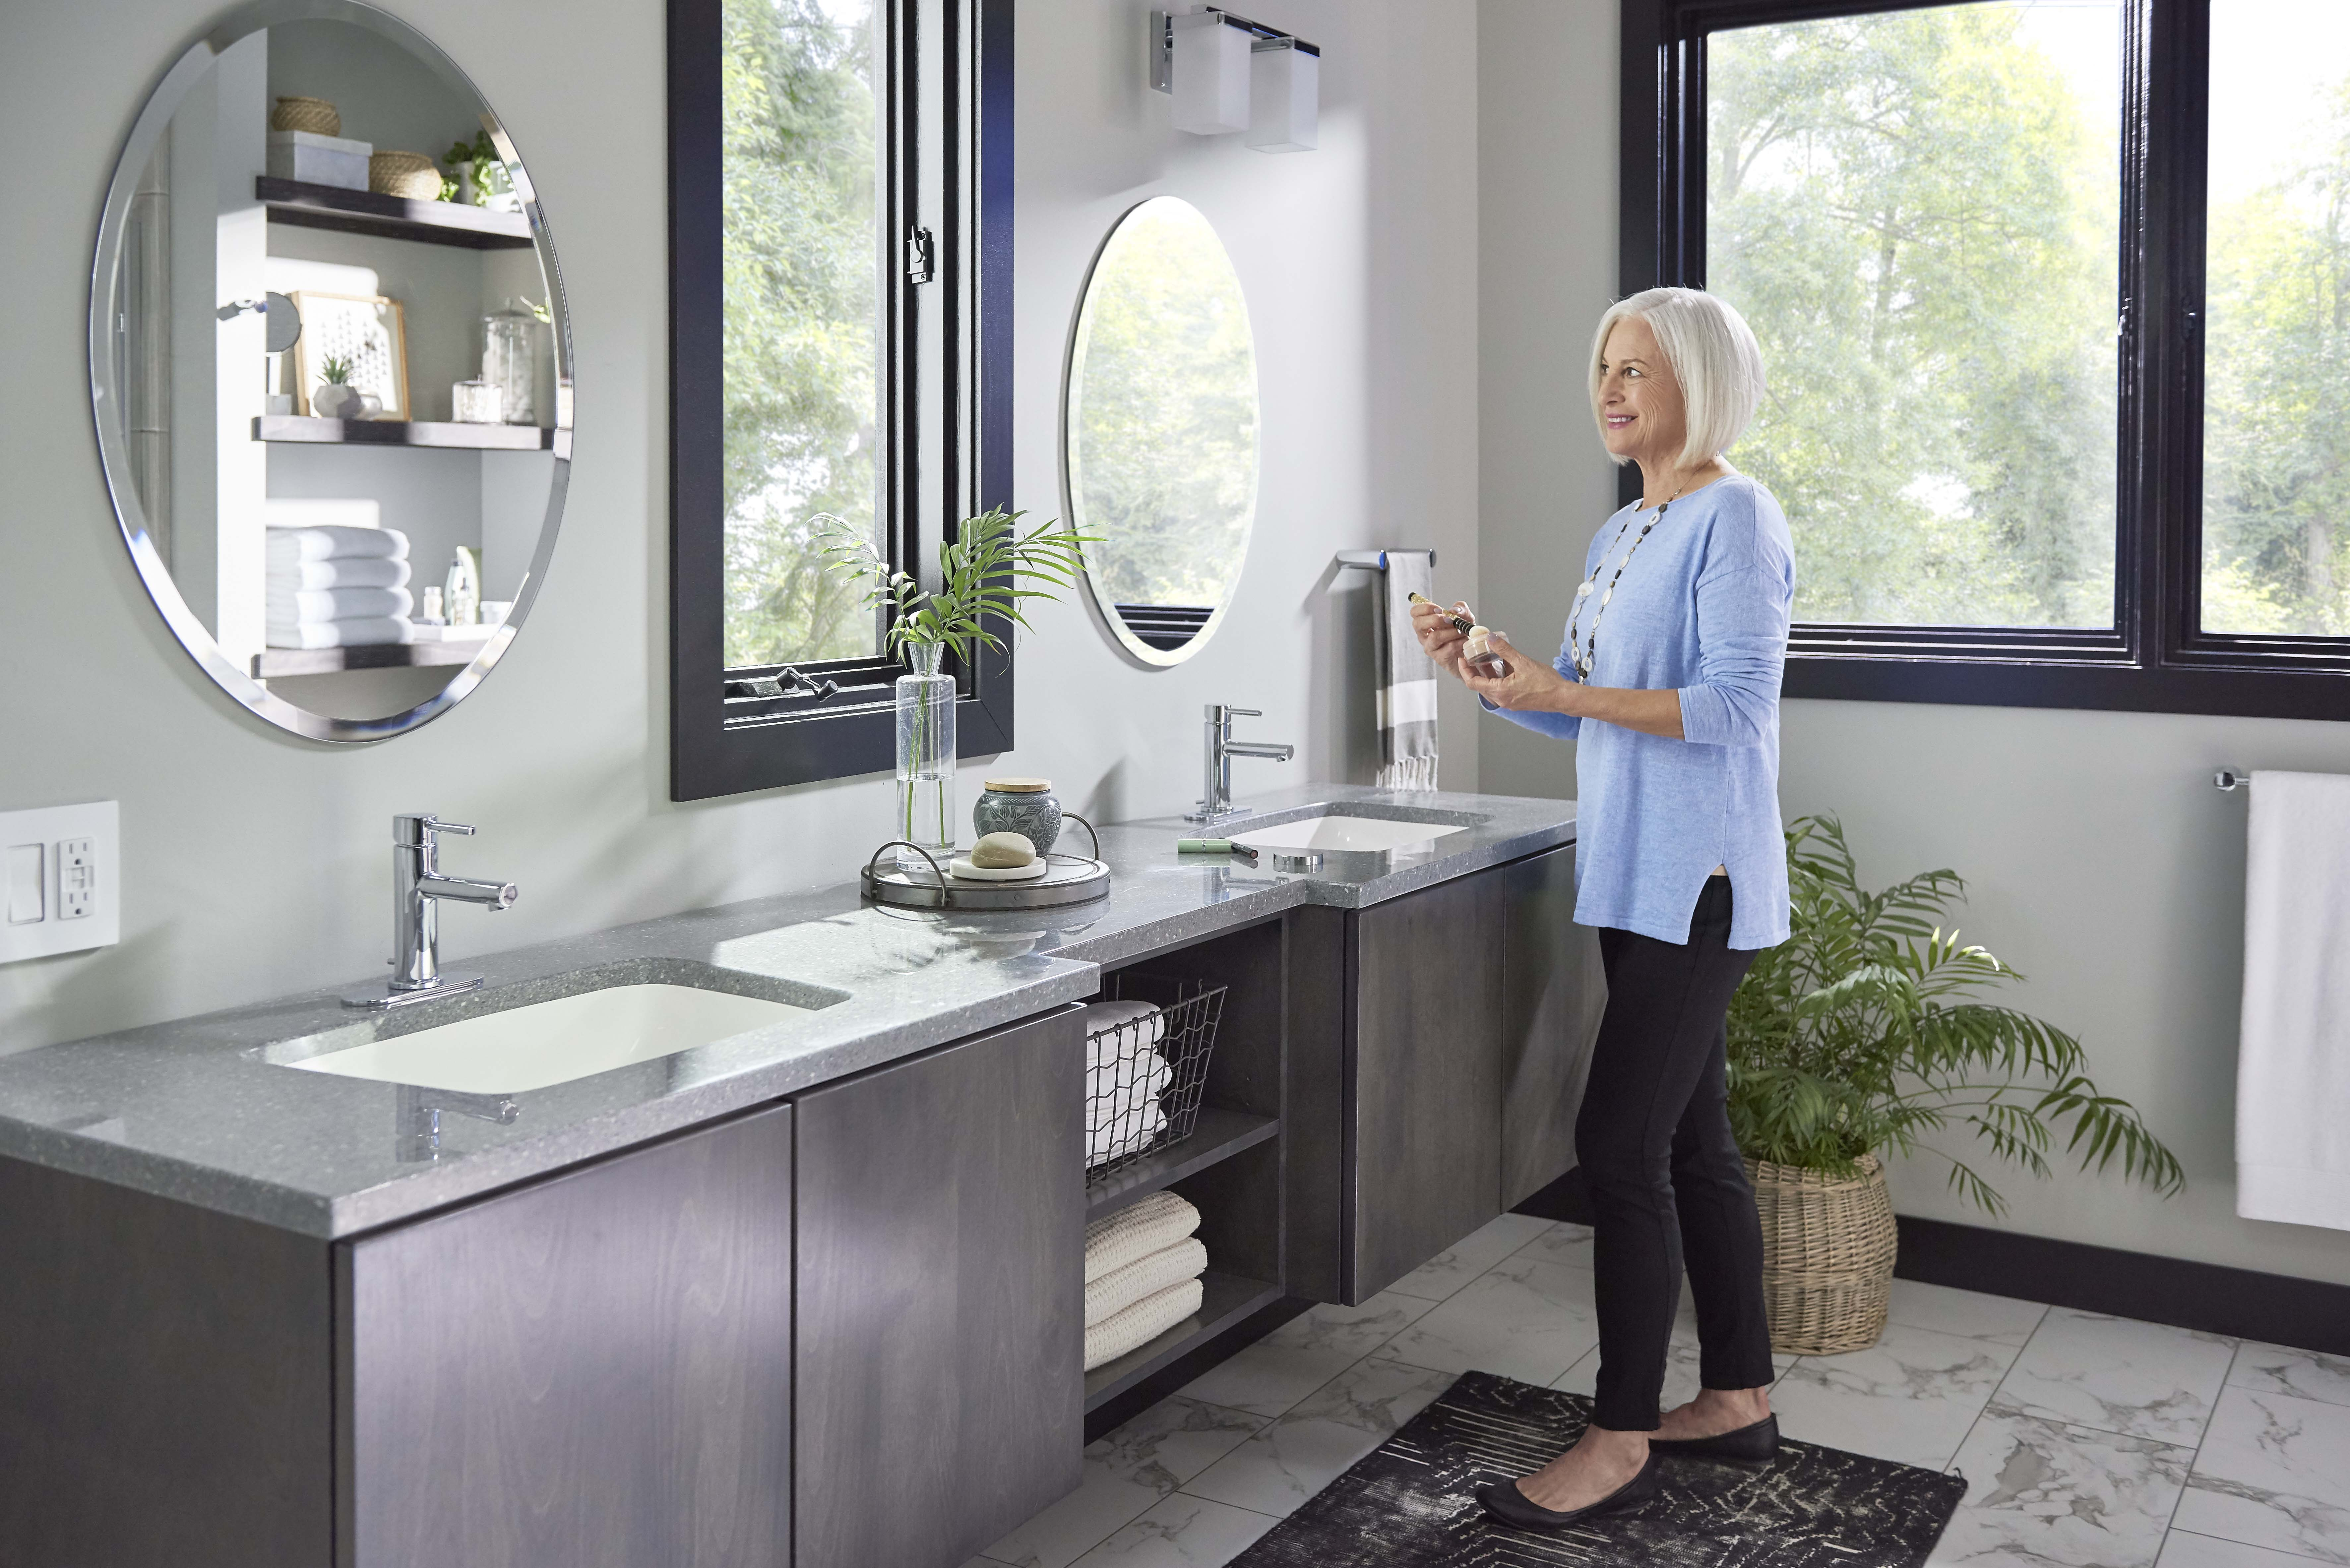 5 Tips For Minimizing Germs At Home Re Bath Re Bath